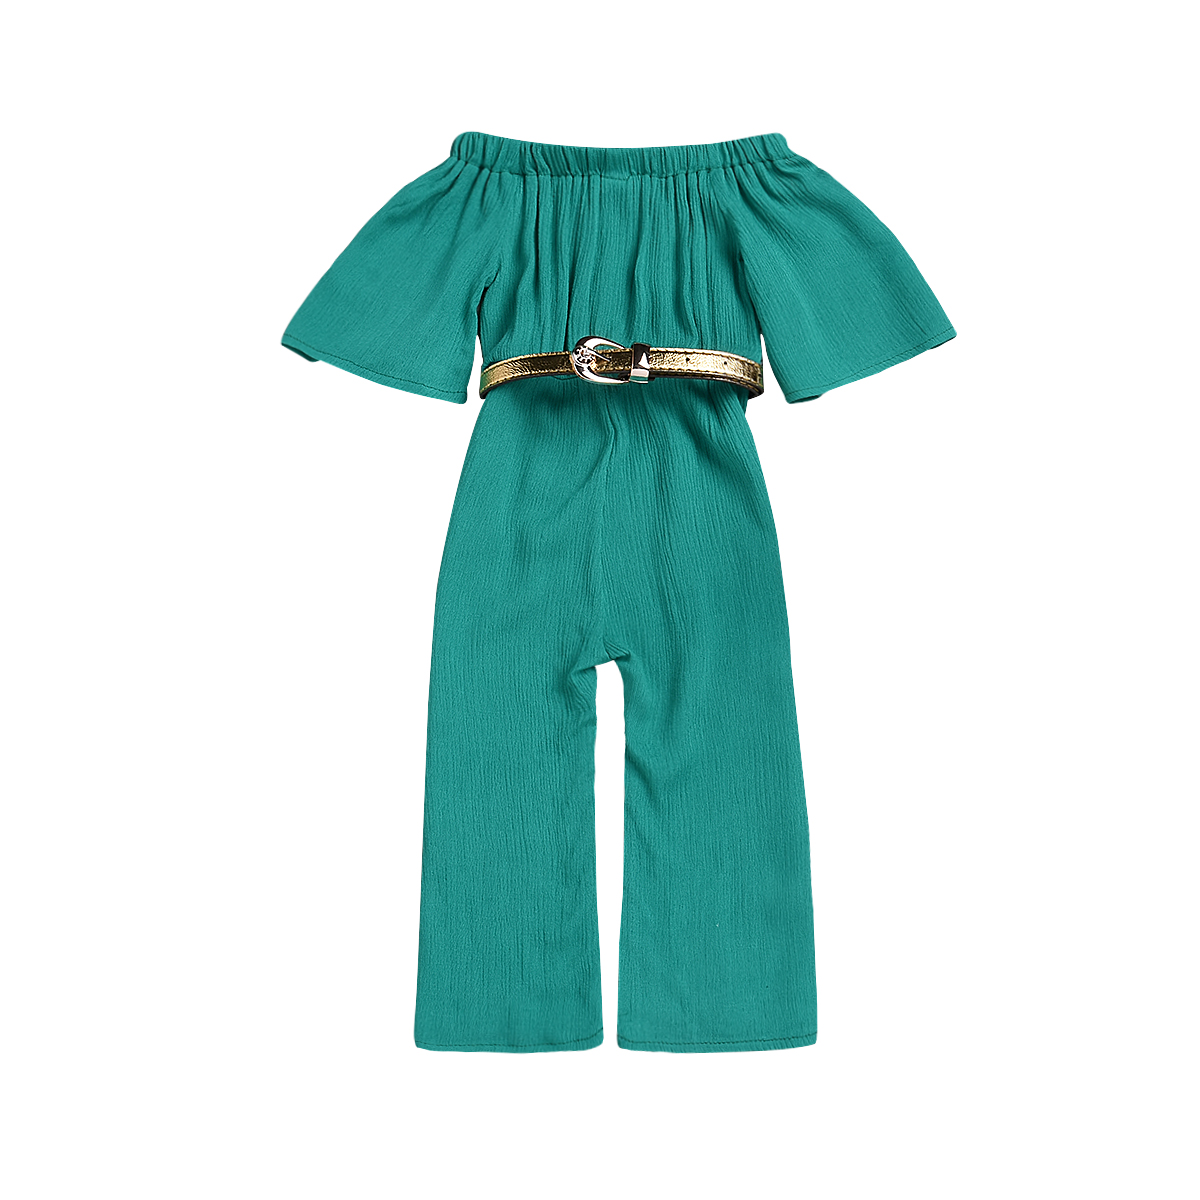 Toddler Kids Infant Baby Girls Off Shoulder Shortsleeve Romper Jumpsuits Playsuit Loose Casual Trousers Fashon Clothes 6M-4T